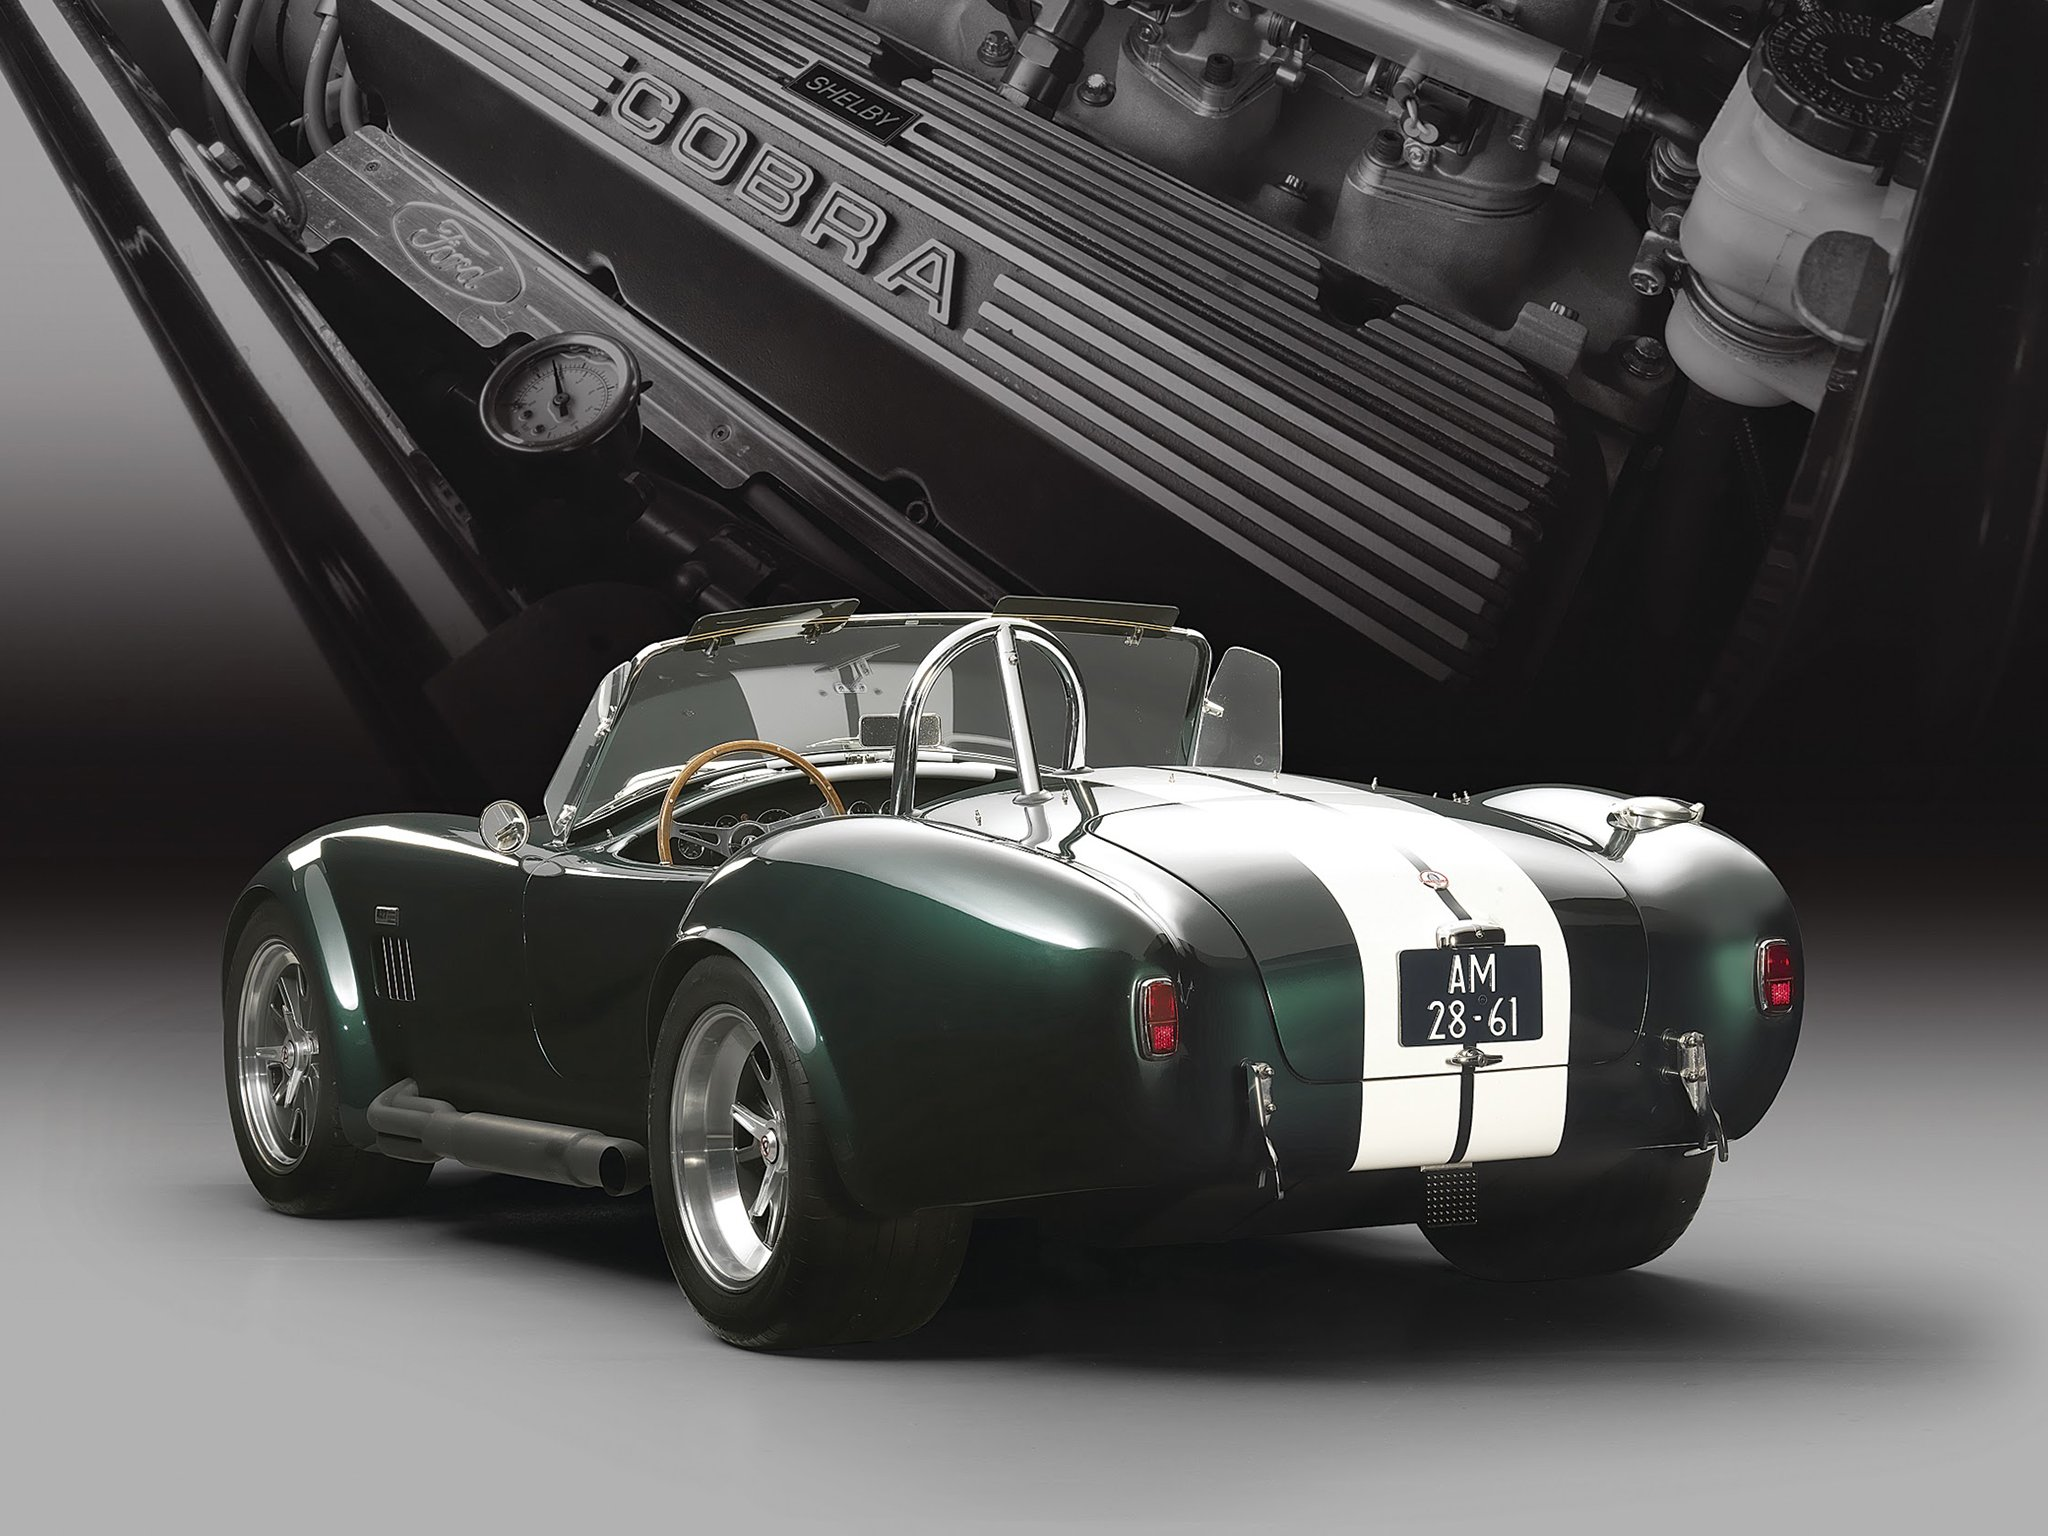 Muscle Car Wallpapers High Resolution 1965 Shelby Cobra 427 Mkiii Supercar Hot Rod Rods Muscle